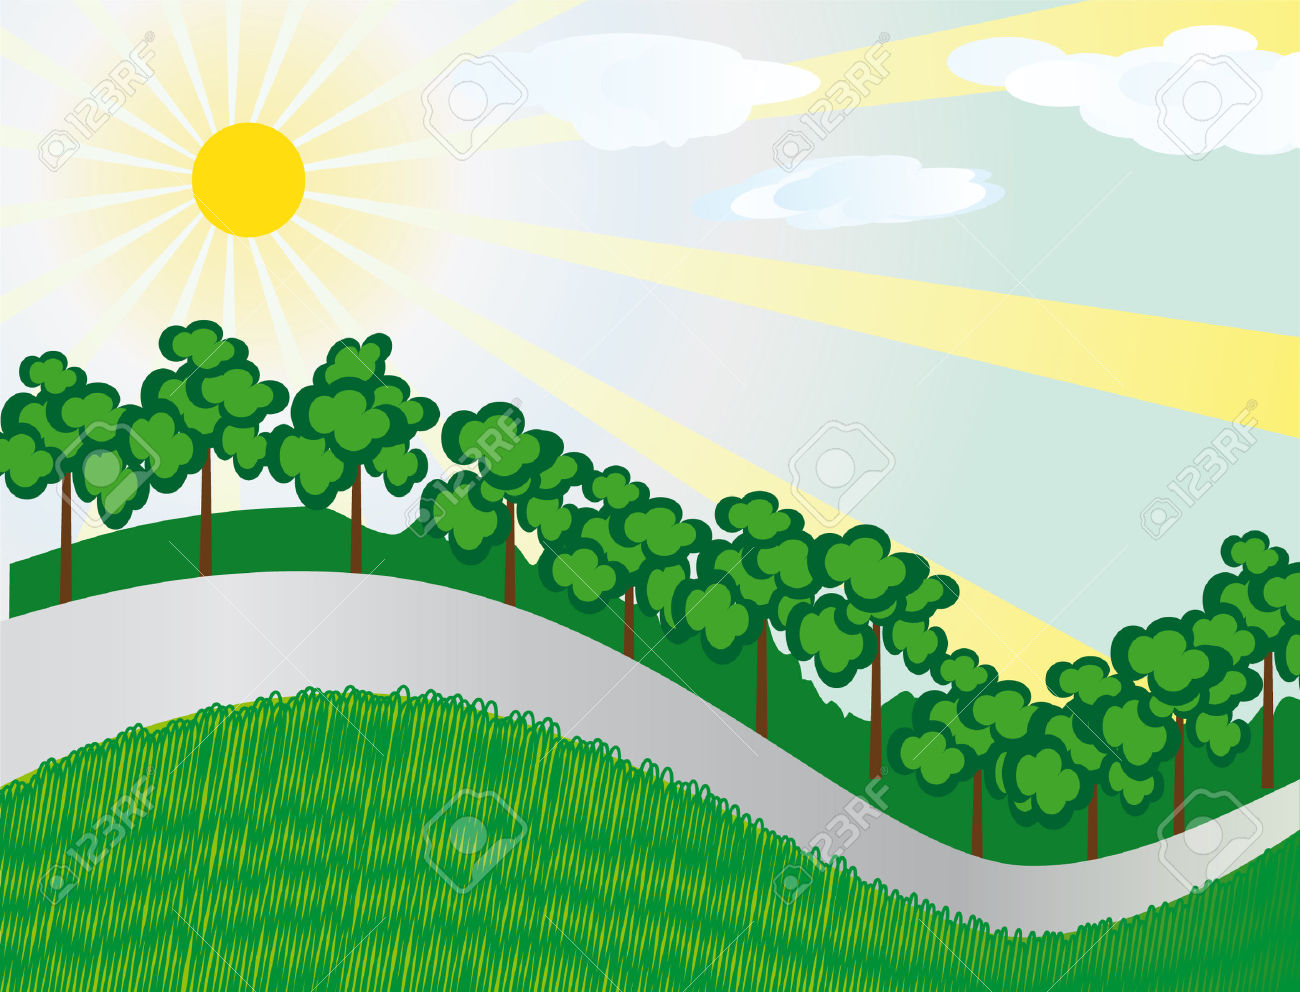 The Hilly Landscape With A Road. Royalty Free Cliparts, Vectors.